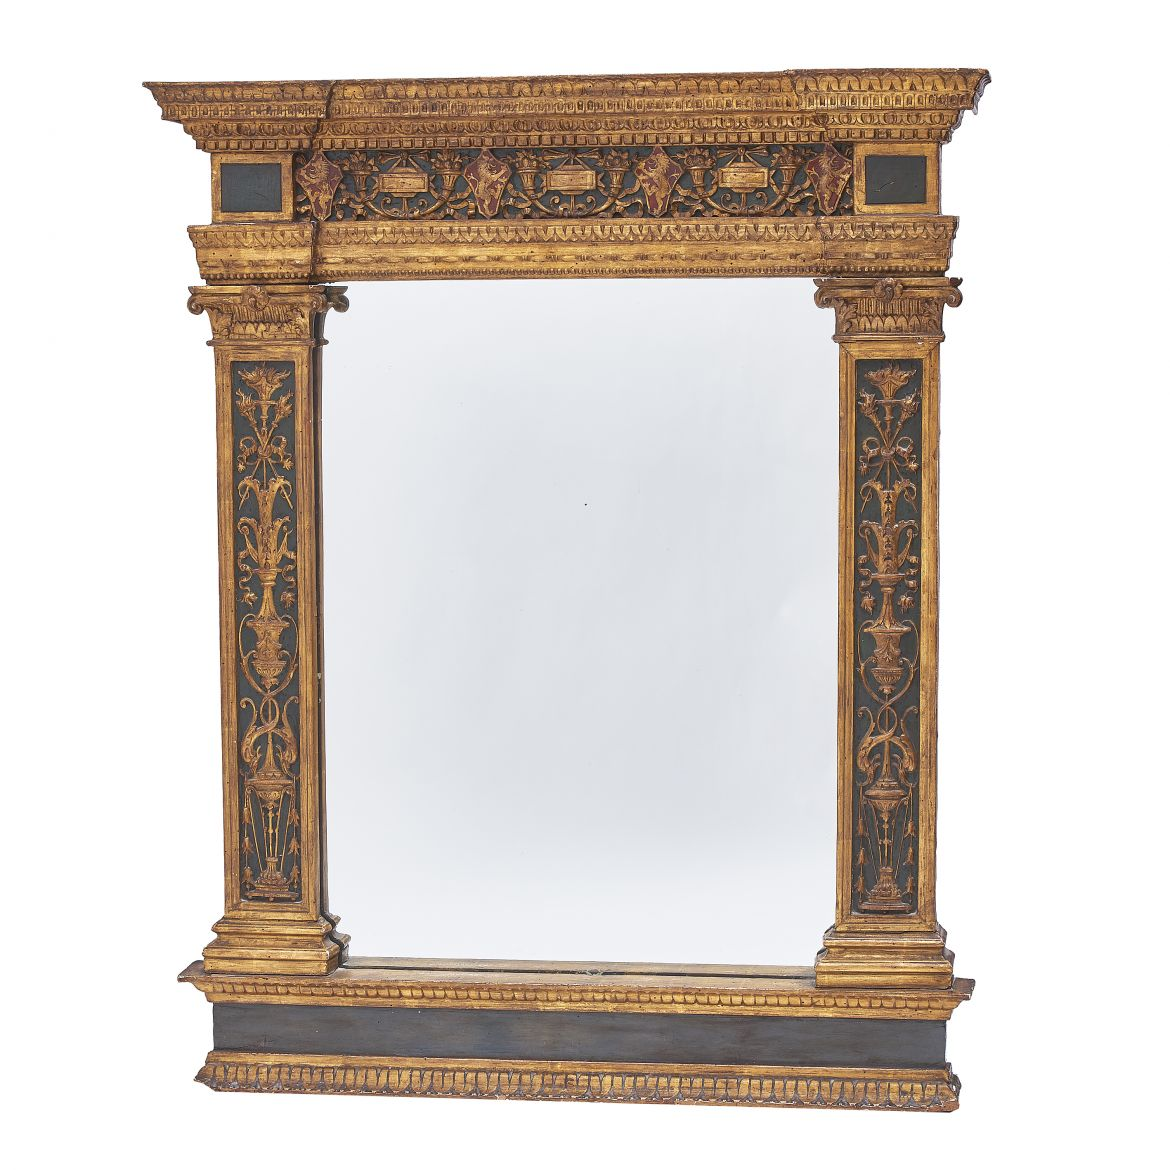 Mirror with Lion Crests